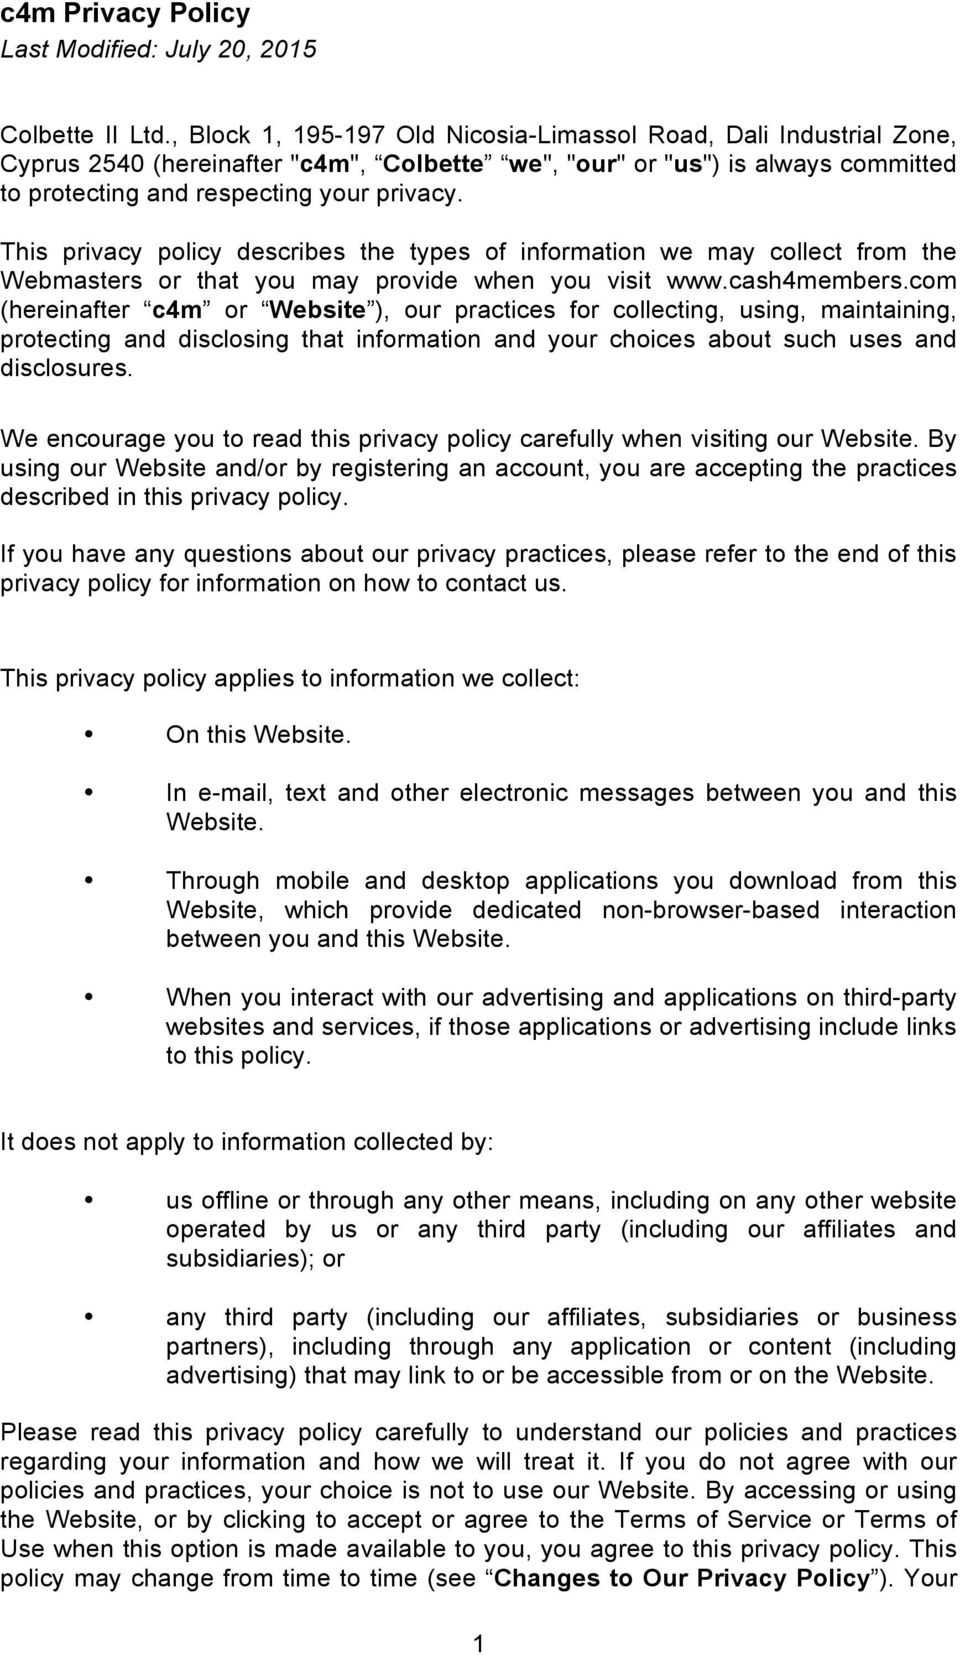 This privacy policy describes the types of information we may collect from the Webmasters or that you may provide when you visit www.cash4members.